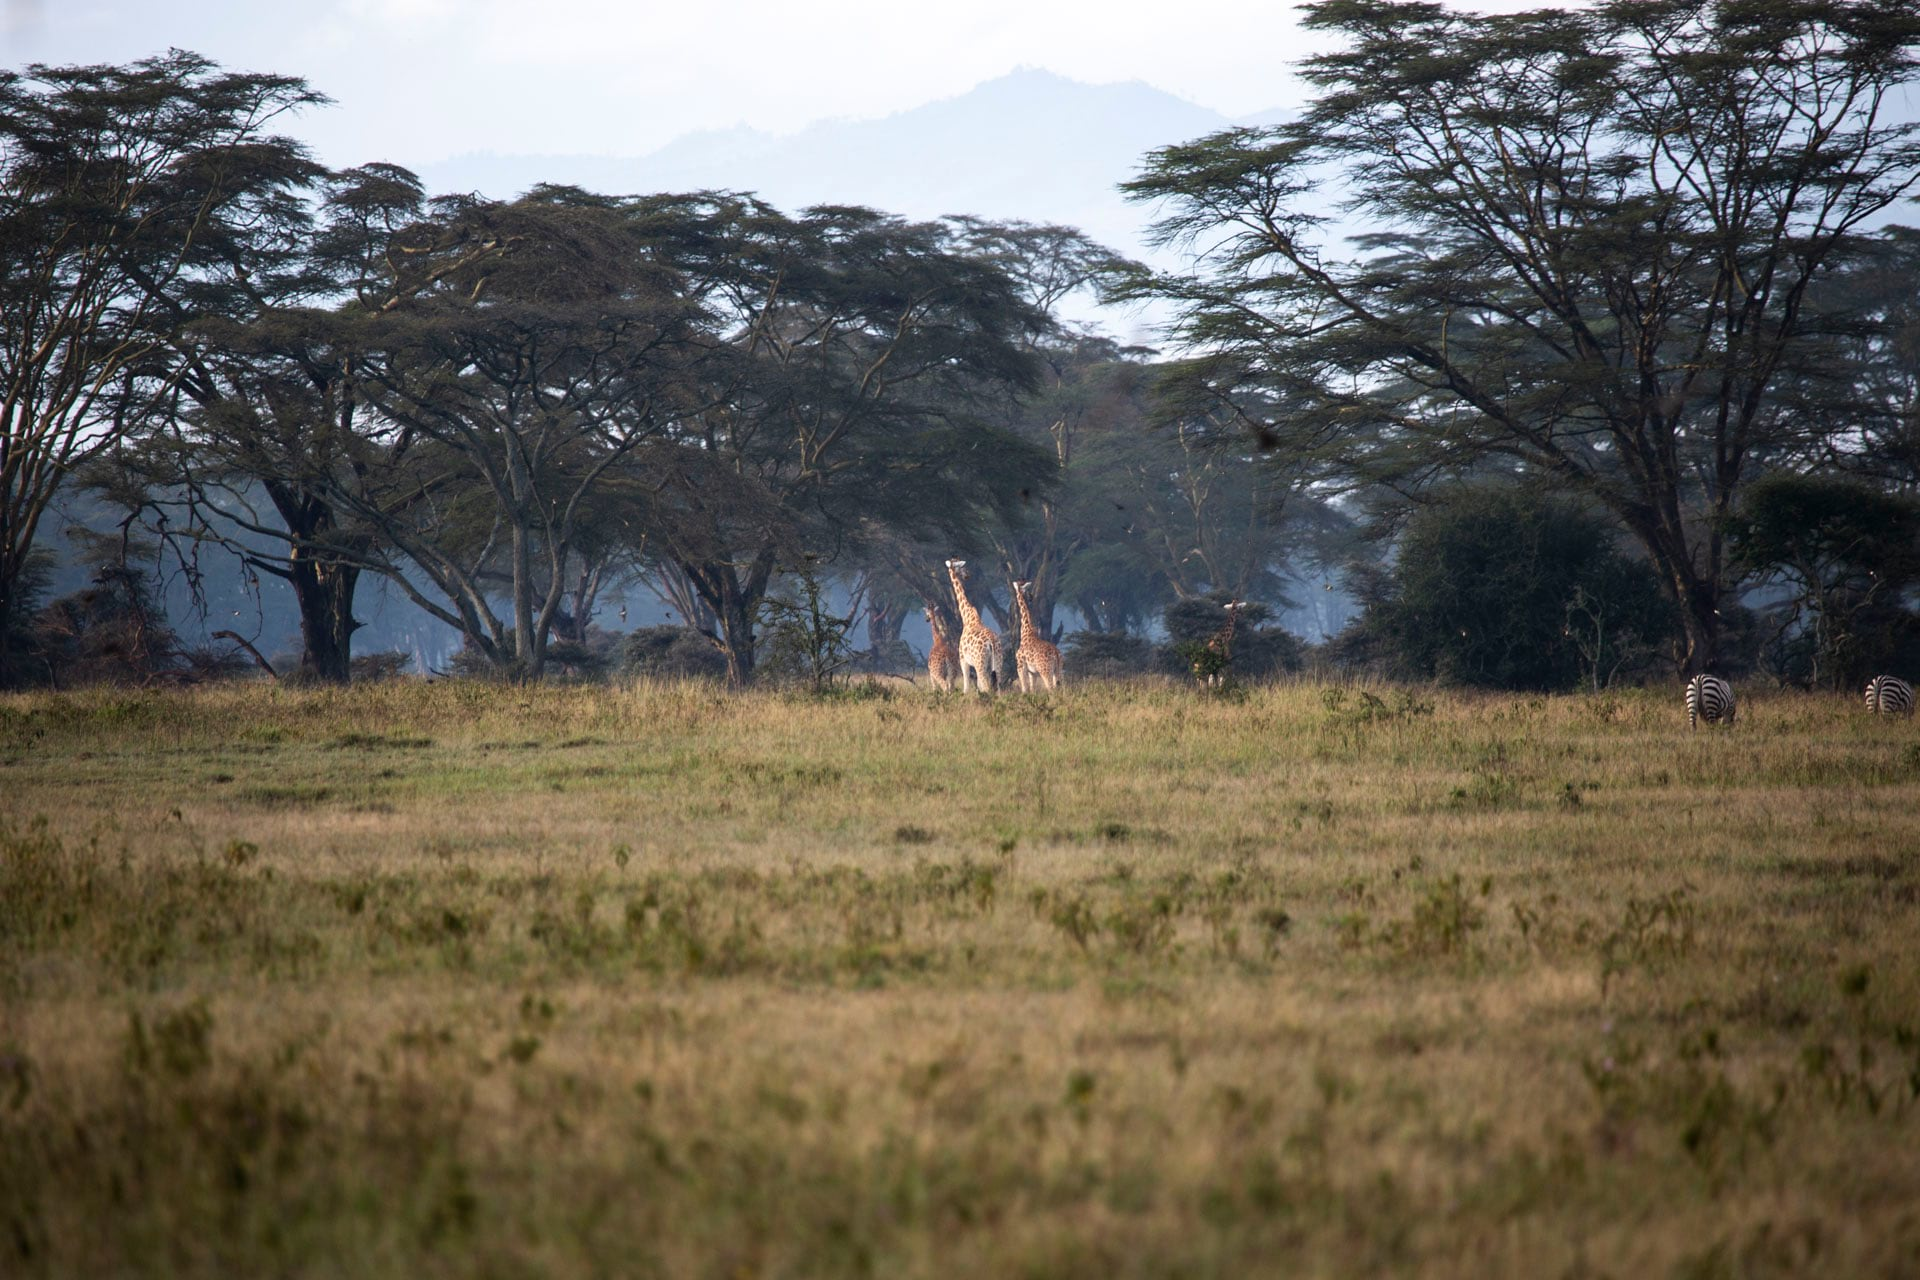 Lake Nakuru National Park located in the Great Rift Valley and is home to a diversity of birds and mammals. Photo: Ross Donihue